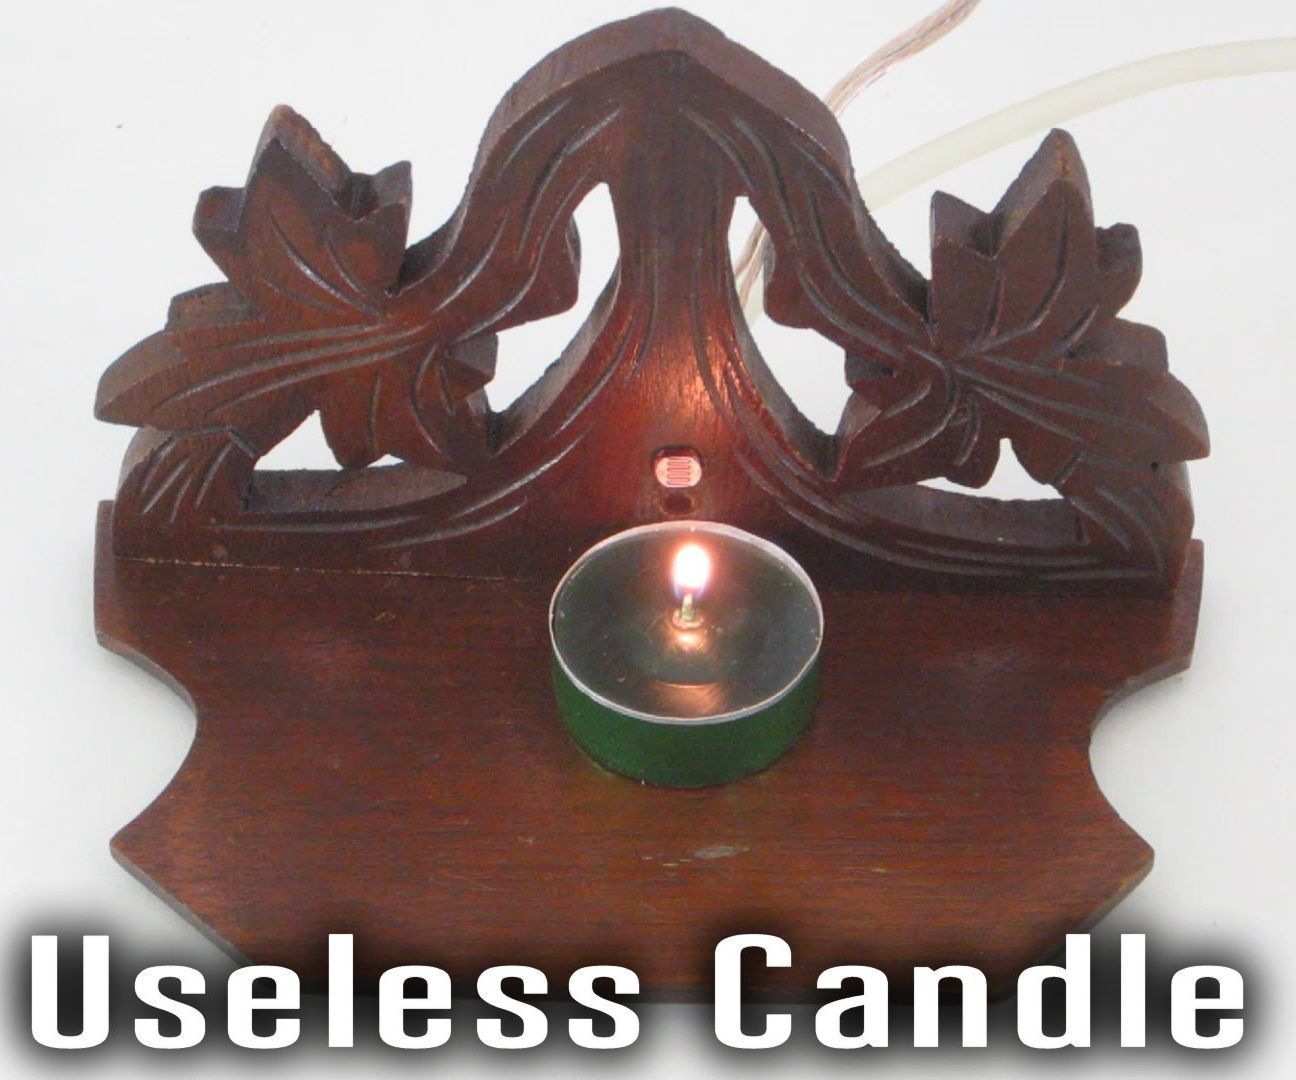 The Useless Candle (A Candle That Blows Itself Out)